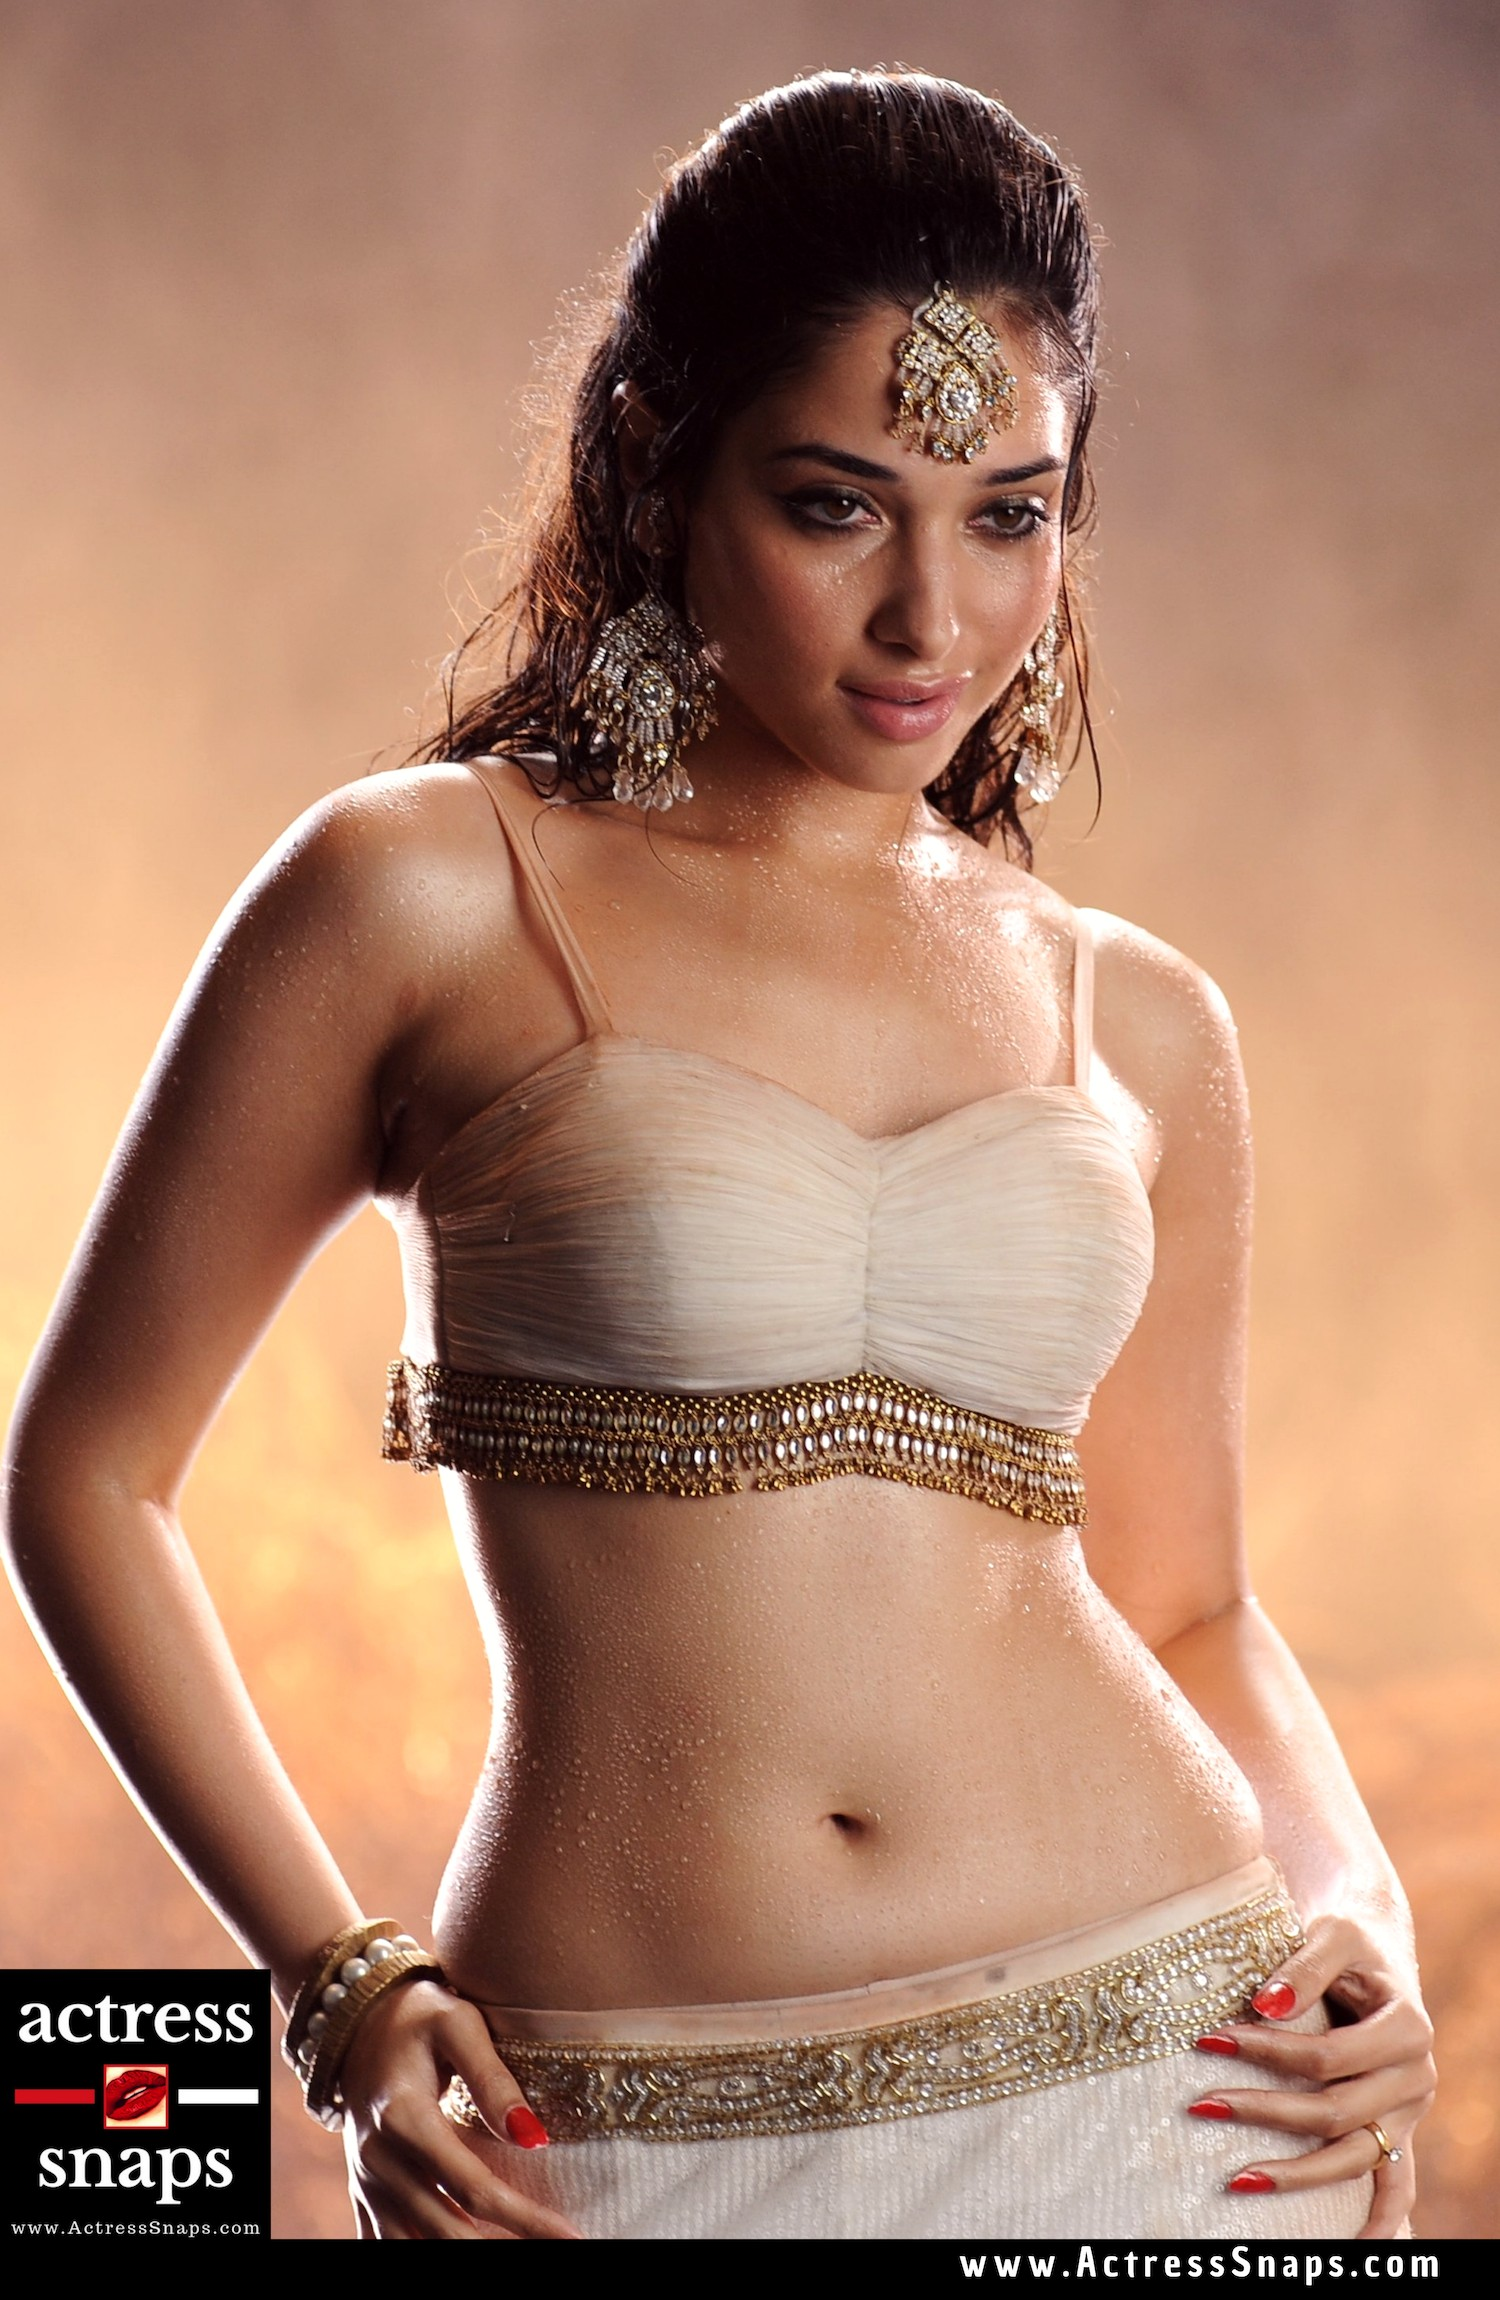 Tamanna vs Ileana - The Real Navel Queen - Sexy Actress Pictures | Hot Actress Pictures - ActressSnaps.com